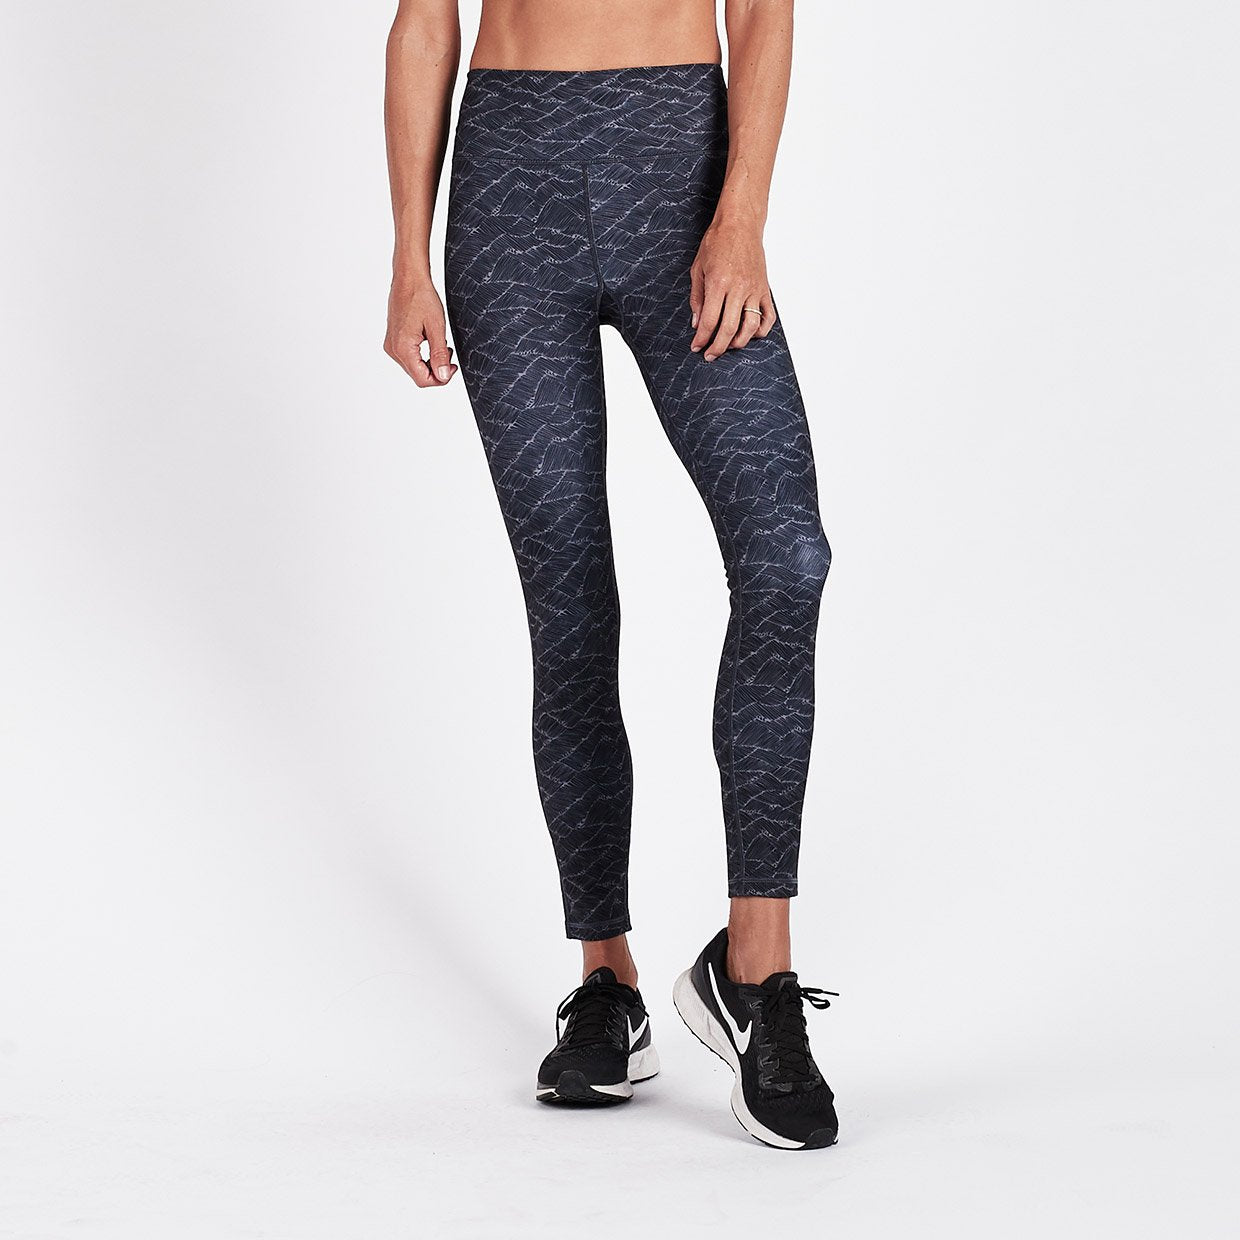 Vibes Mid Rise Legging - Charcoal Wave - Charcoal Wave 1